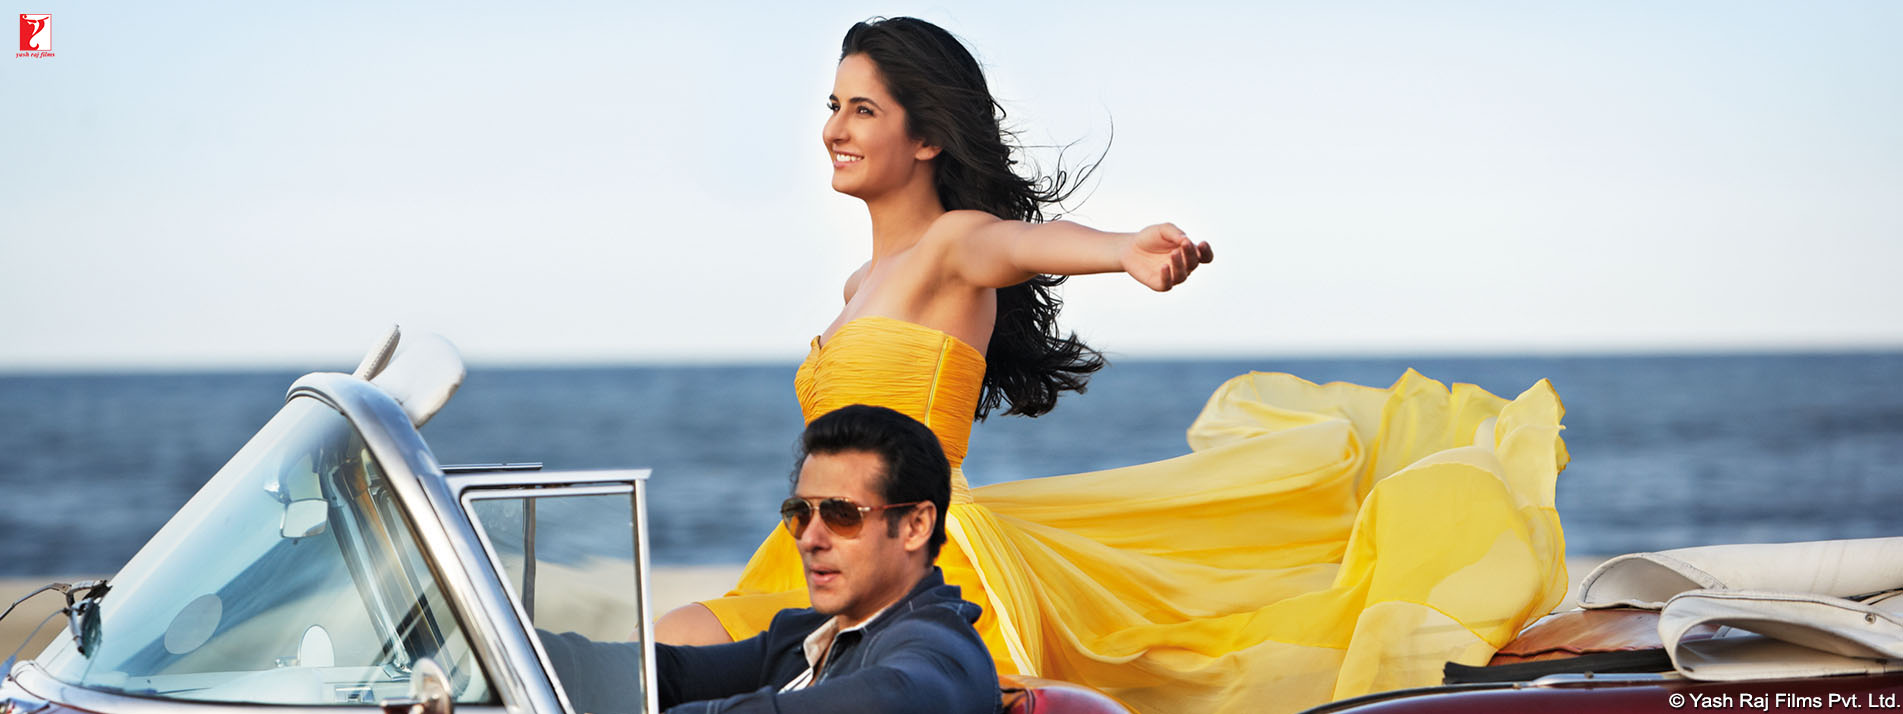 Salman Khan And Katrina Kaif In Ek Tha Tiger: Salman Khan, Katrina Kaif